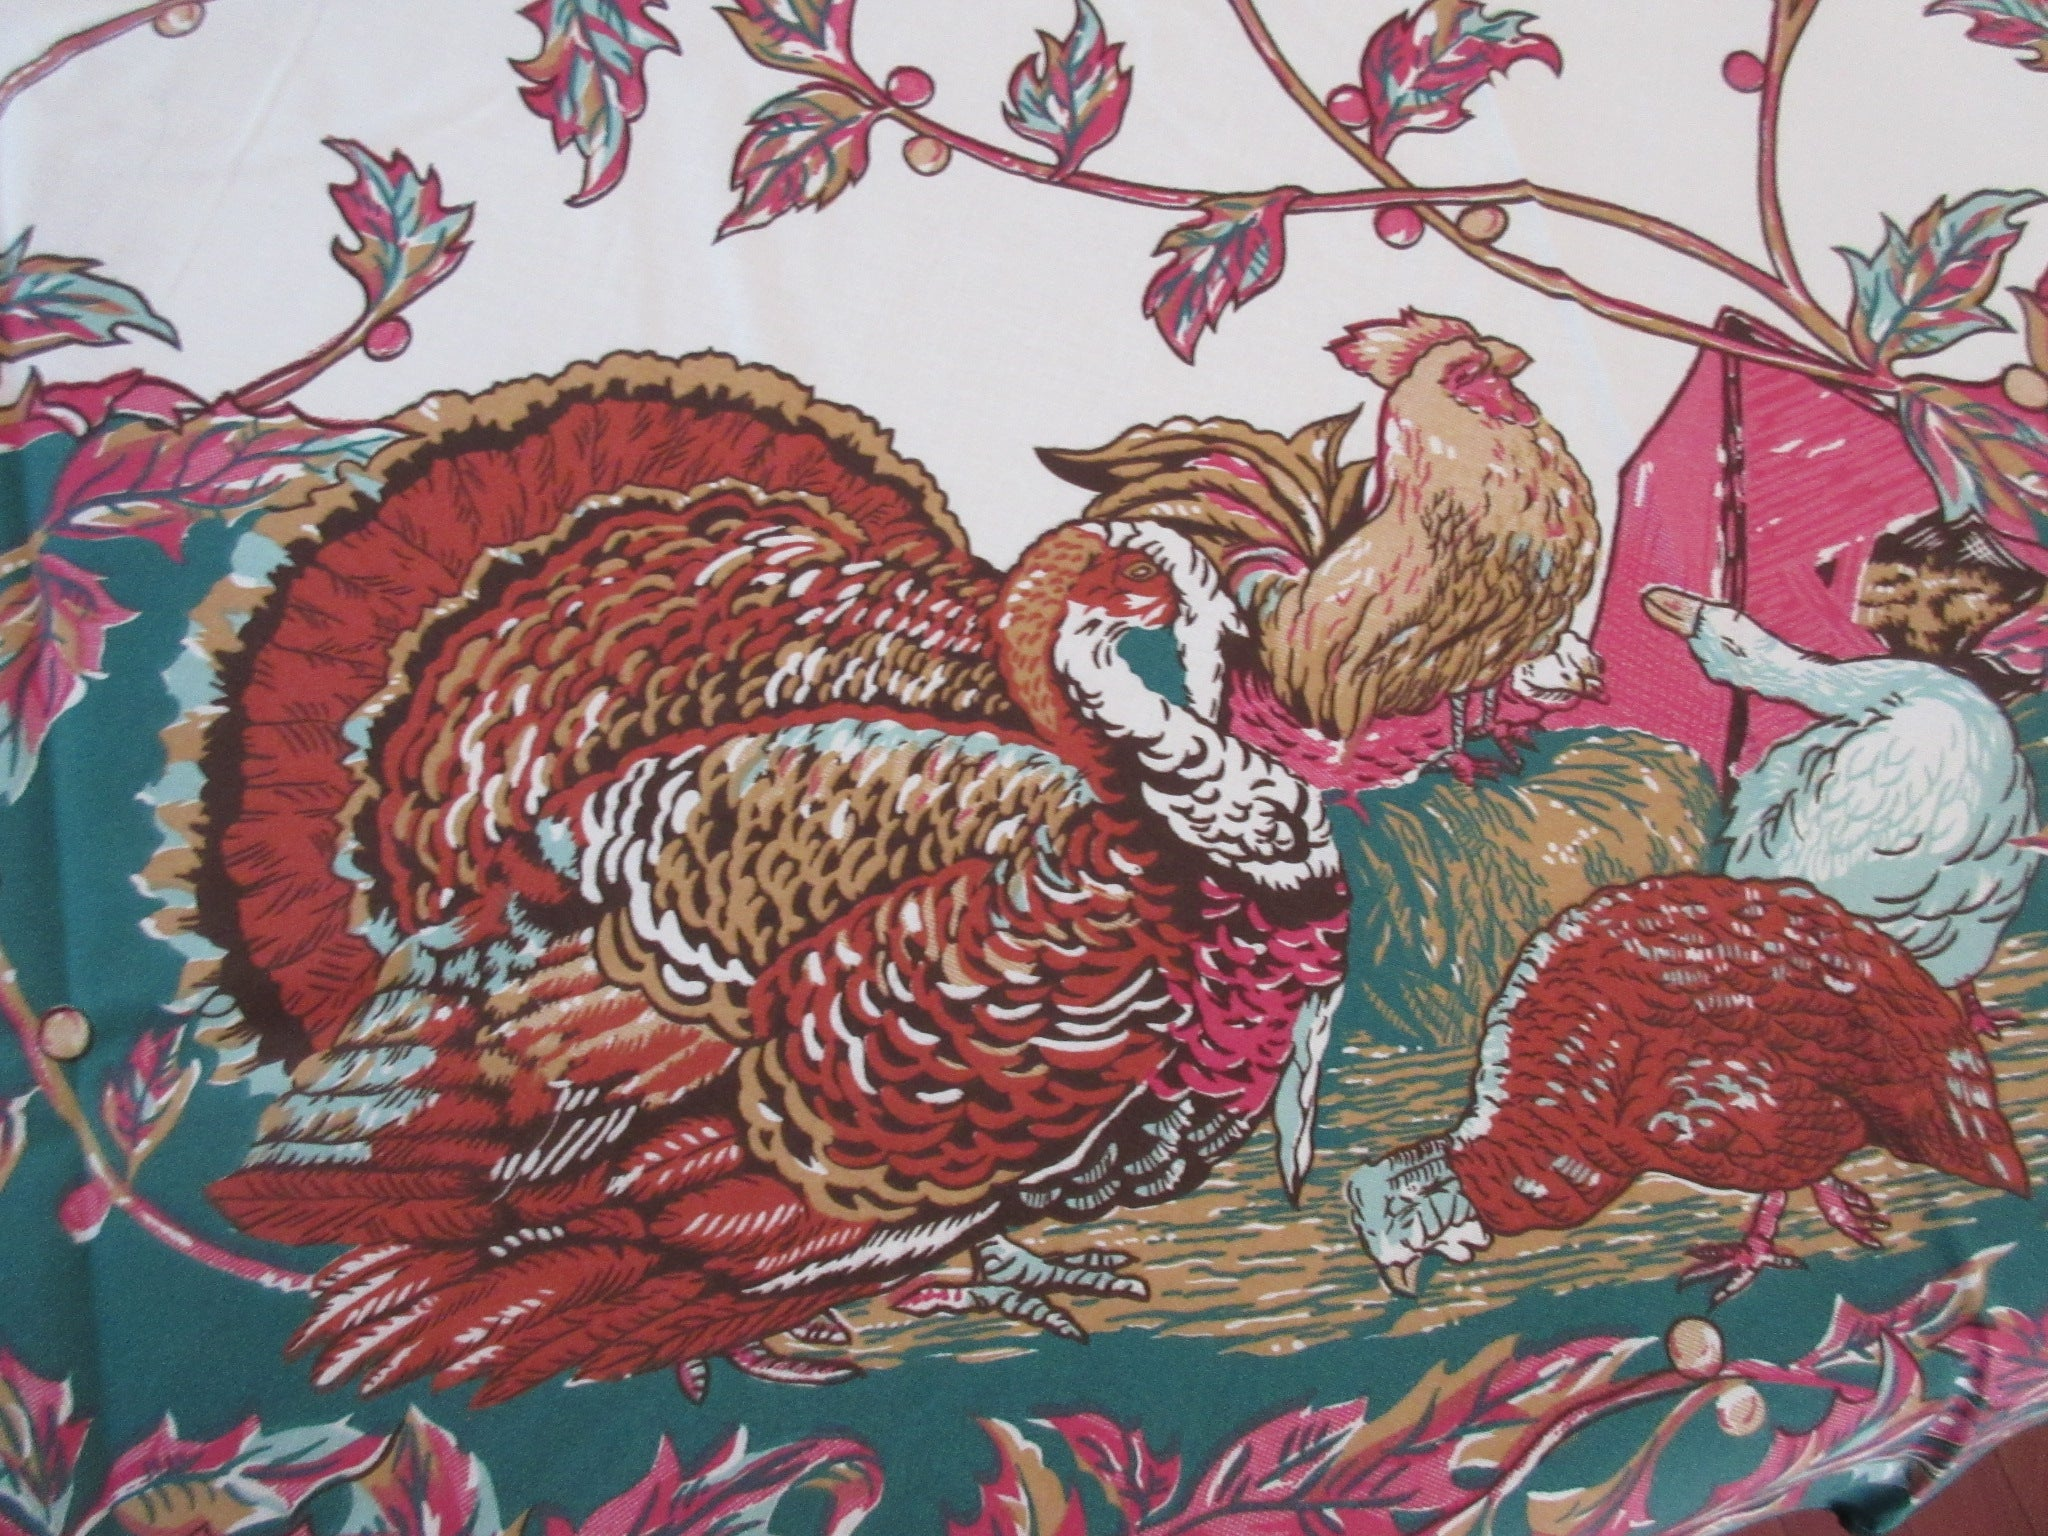 ROUND 70 Thanksgiving Turkey Leacock NOS Novelty Vintage Retro Tablecloth (70 X 69)